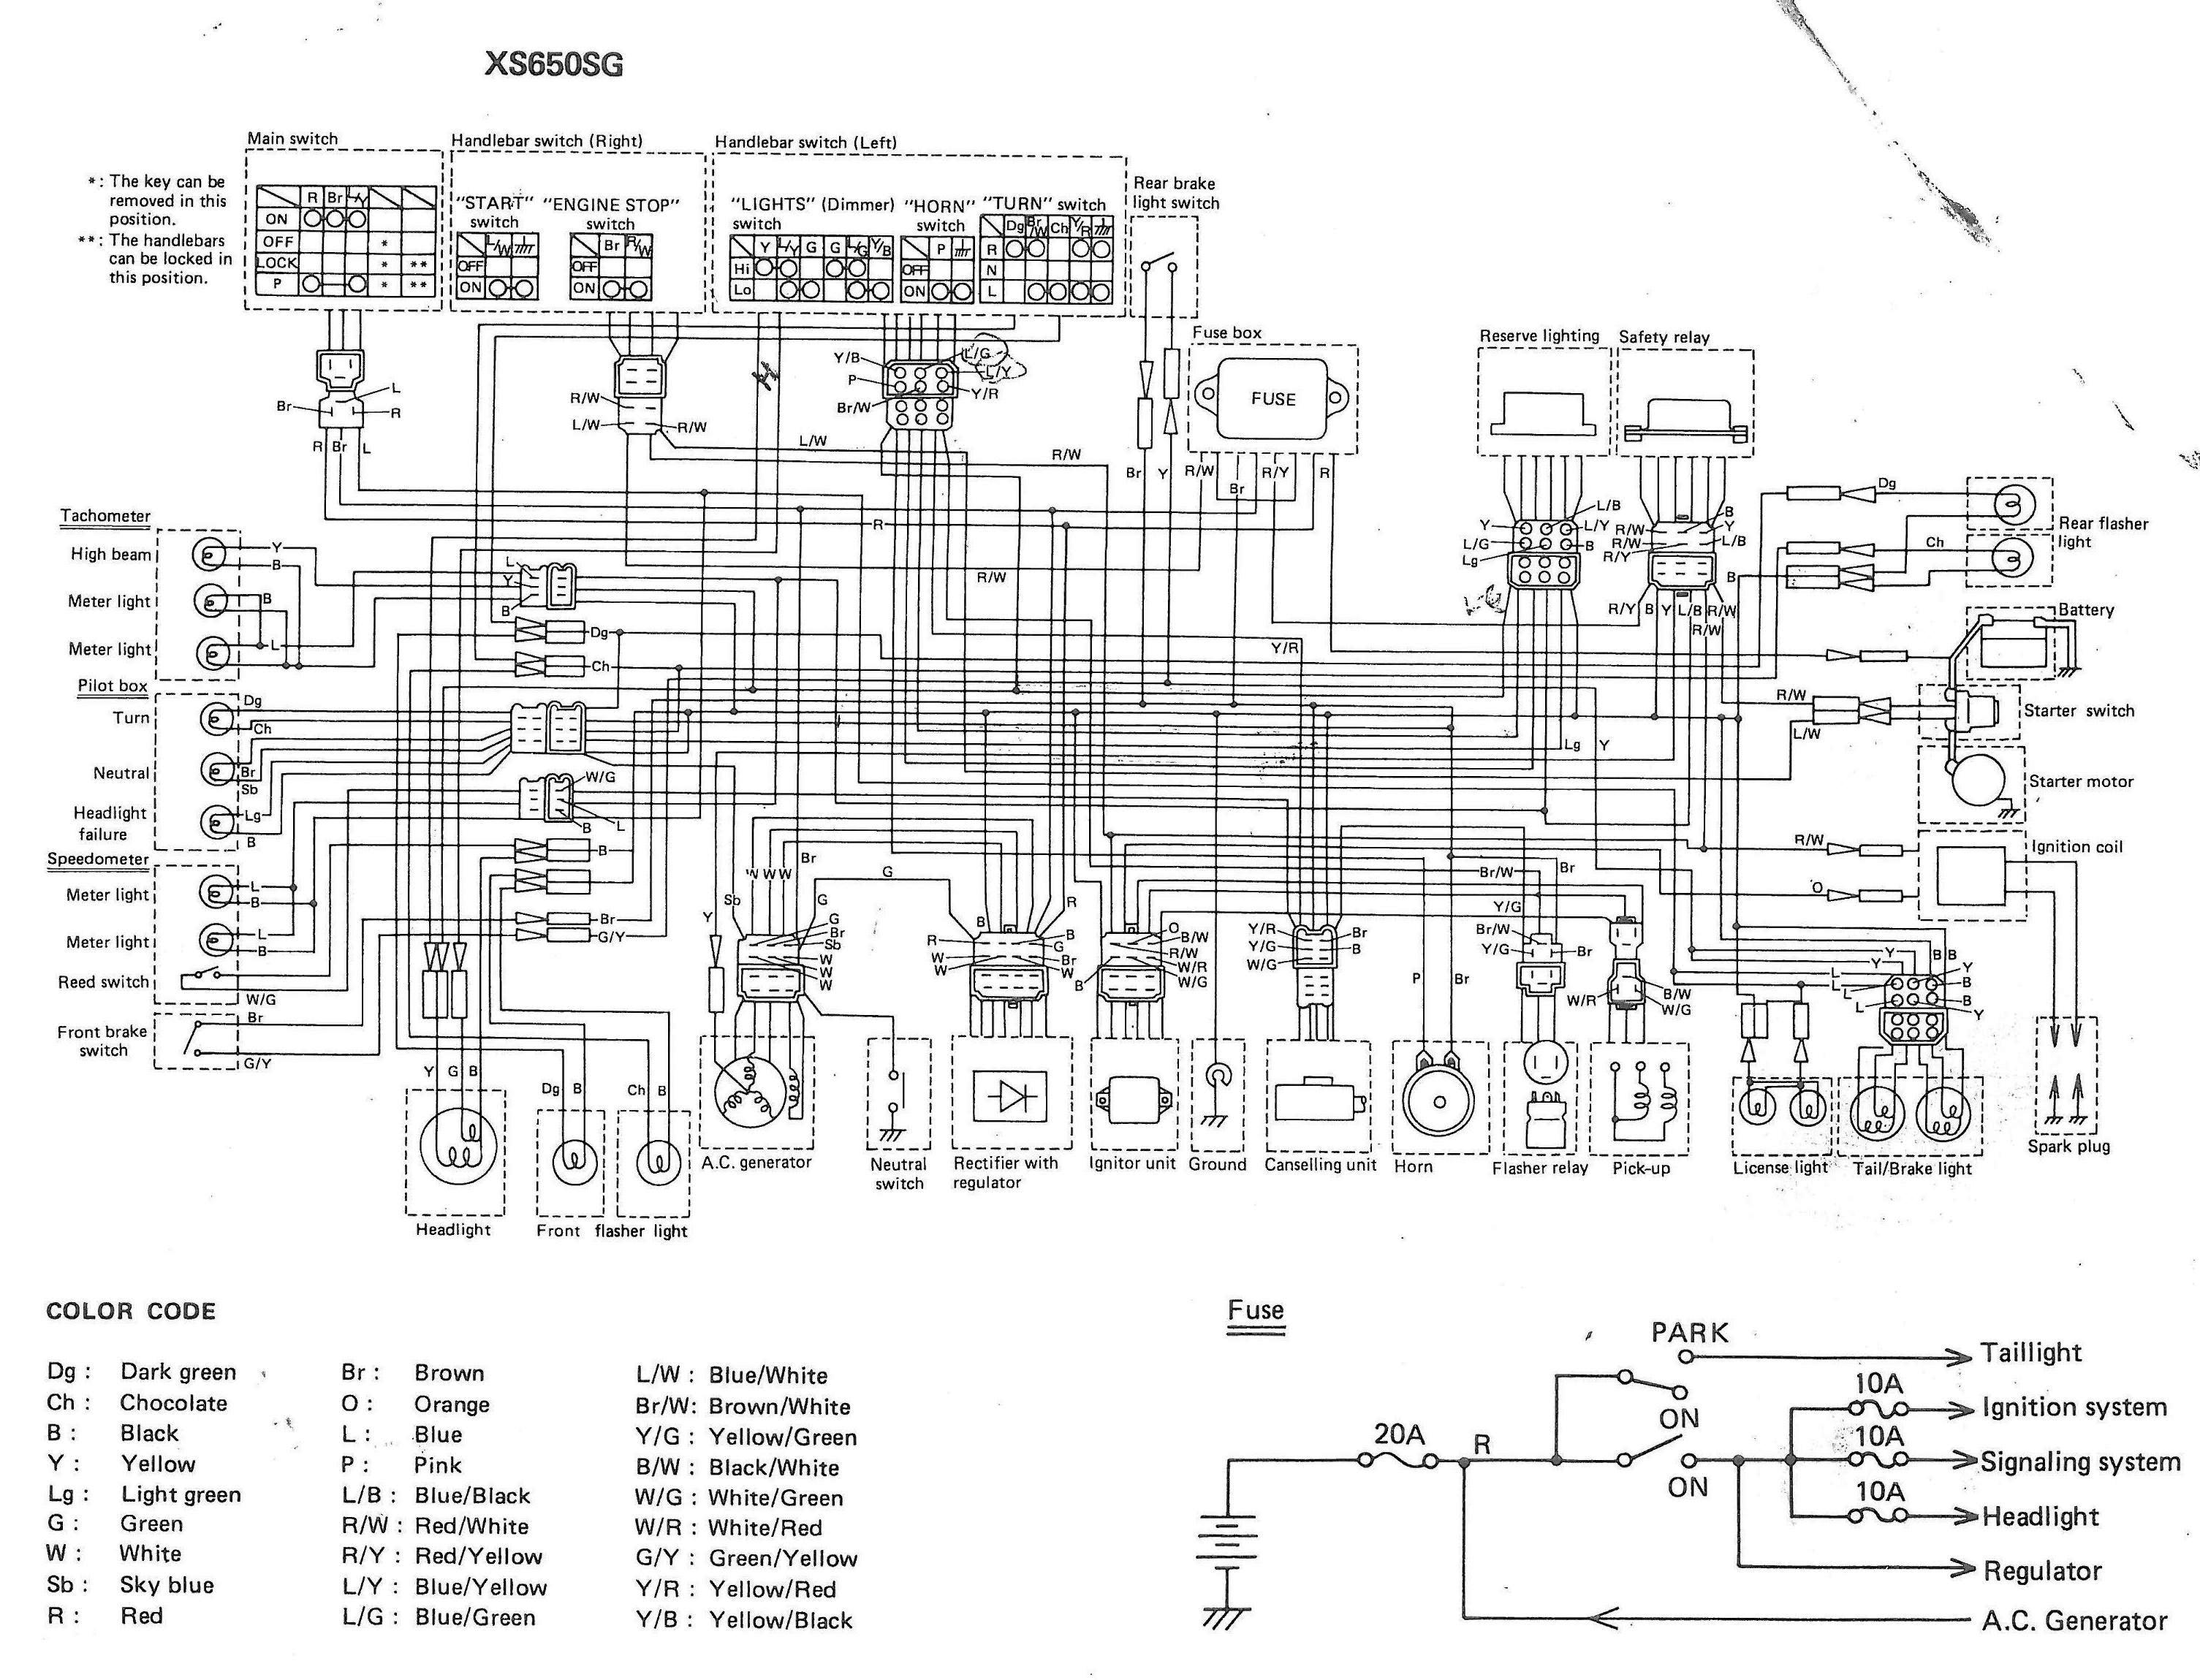 xs650sg wiring diagram 1980 wiring diagram for light switch u2022 rh lomond tw